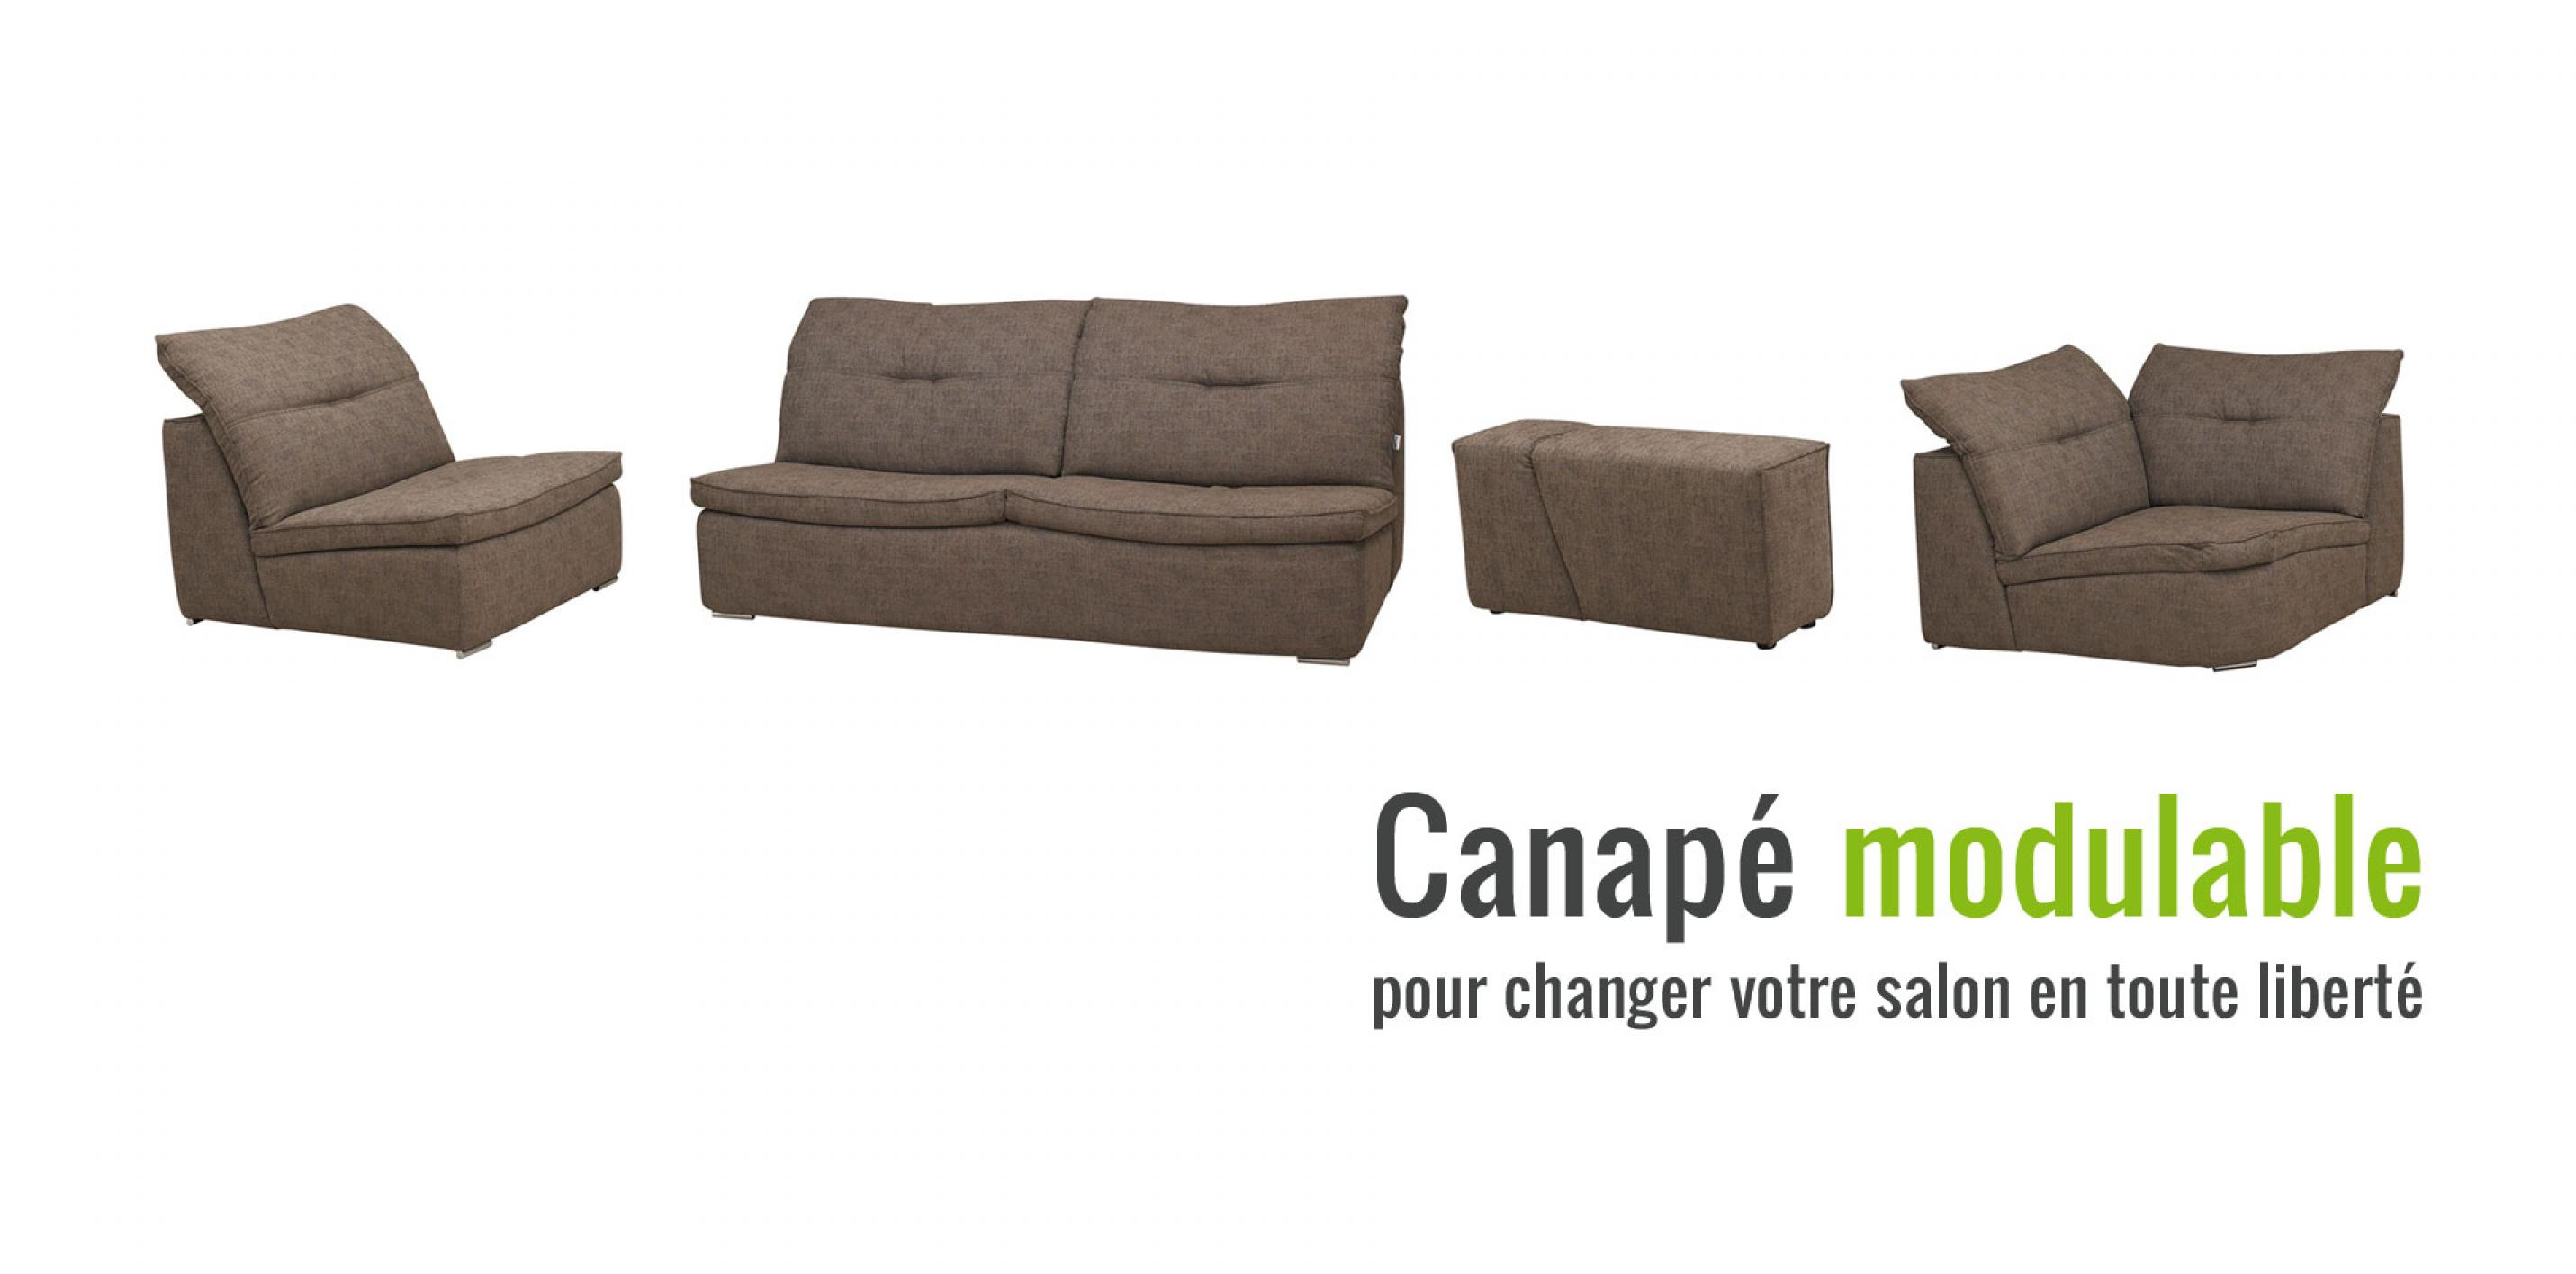 21 canape modulable monsieur meuble 28 images 21 for Canape modulable